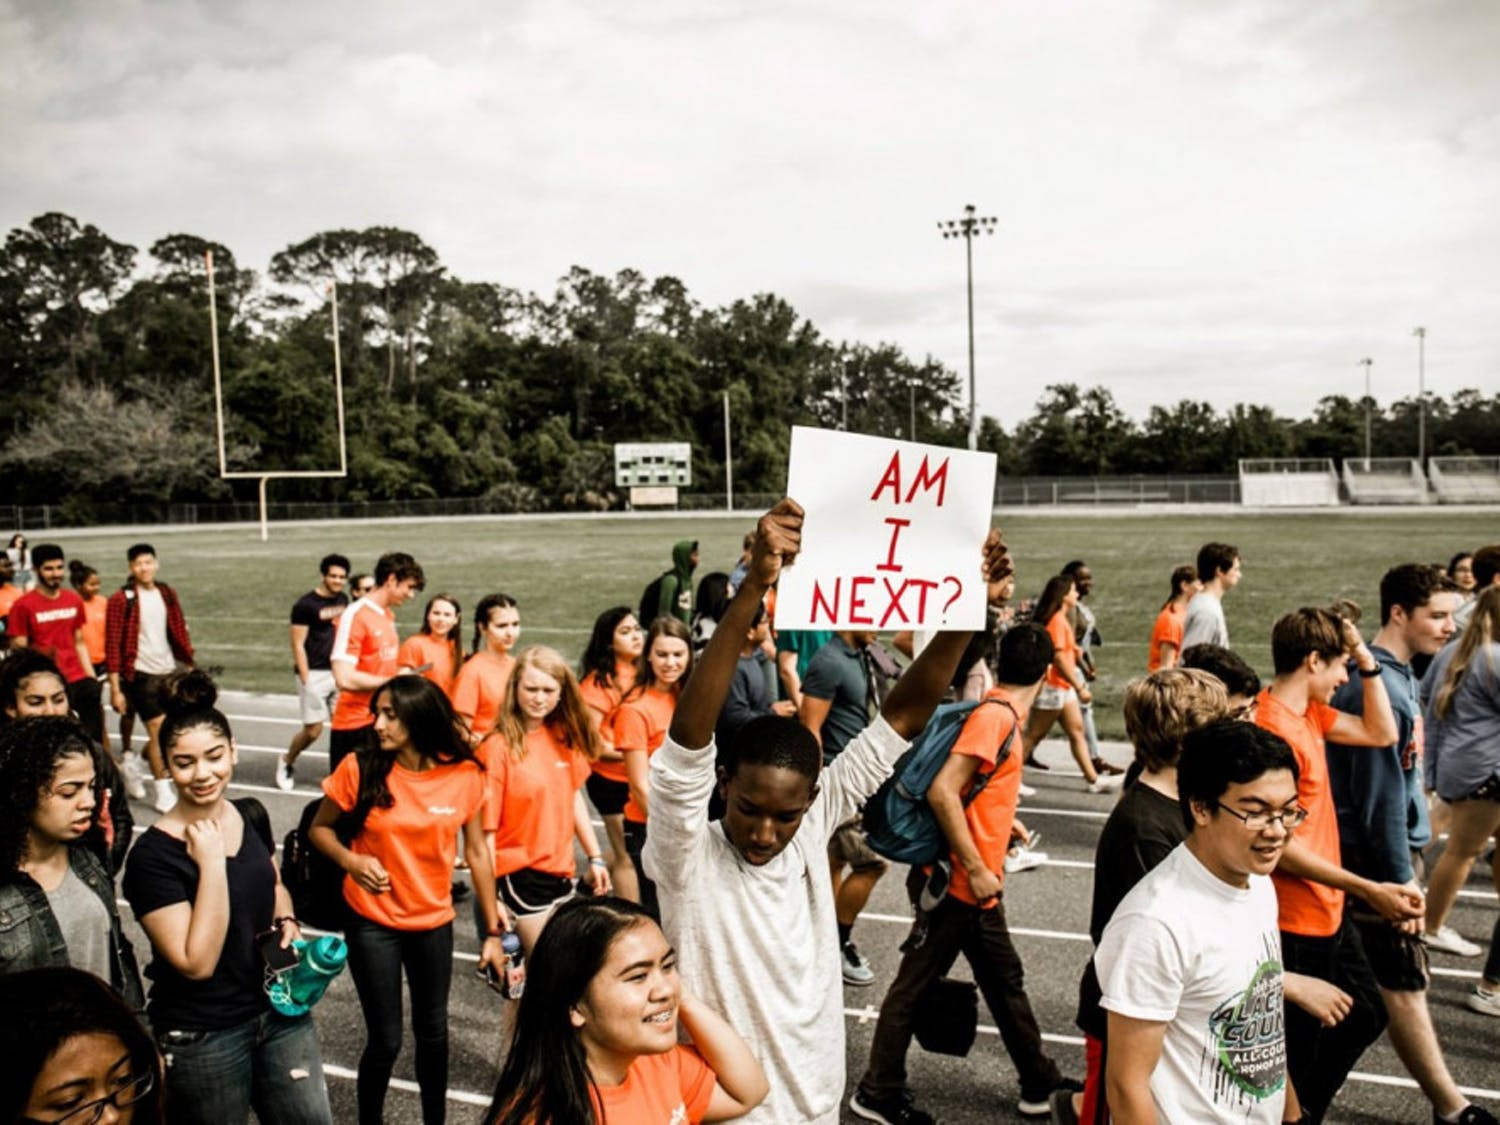 Students at Eastside High School walkout of class in support of gun reform.